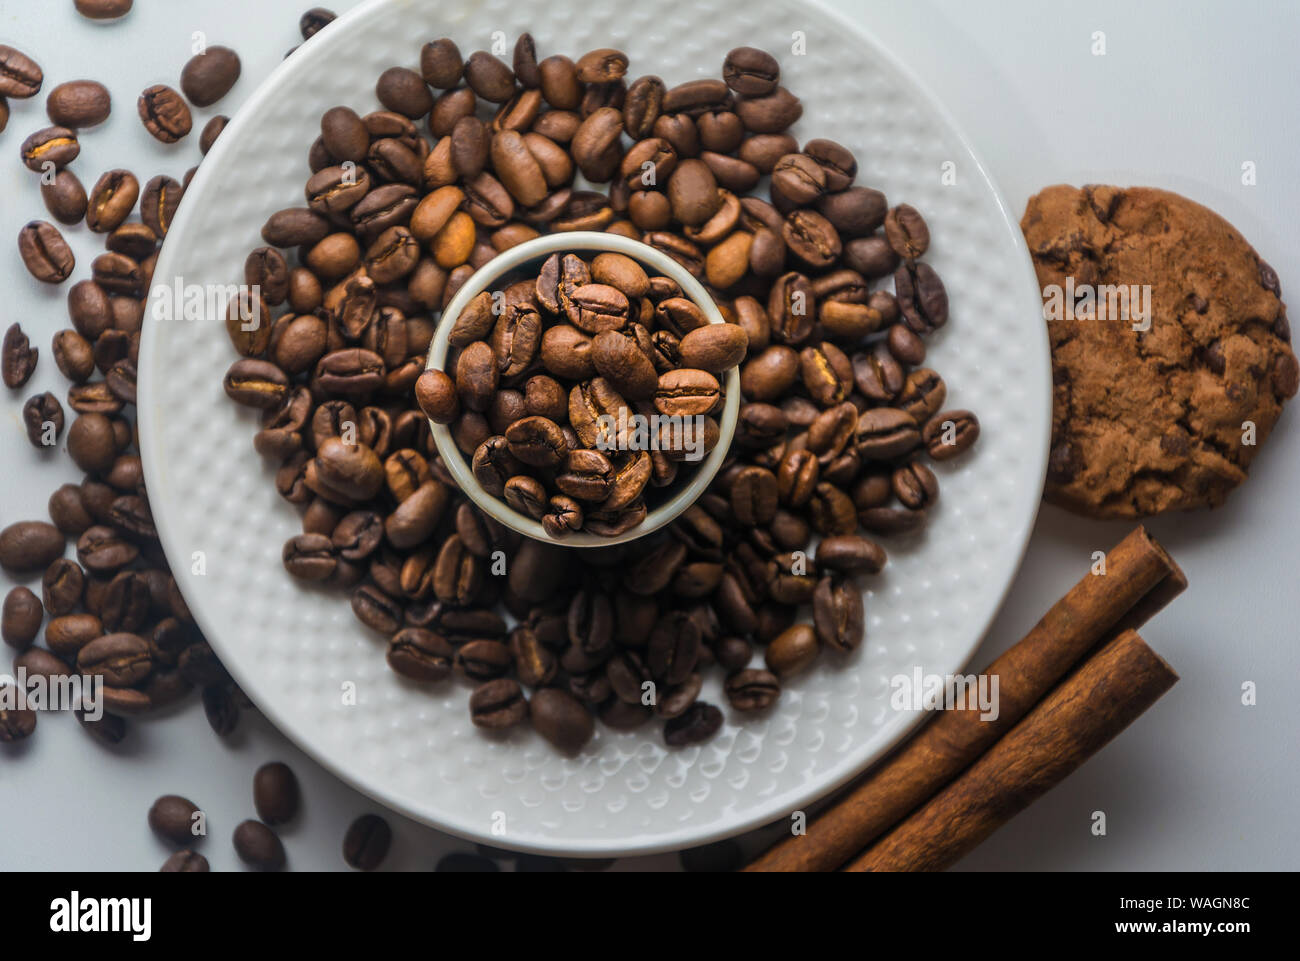 White Coffee cup with roasted coffee beans, cinnamon and biscuits on isolated white background from above. Coffee beans on plate and in the mug. Stock Photo